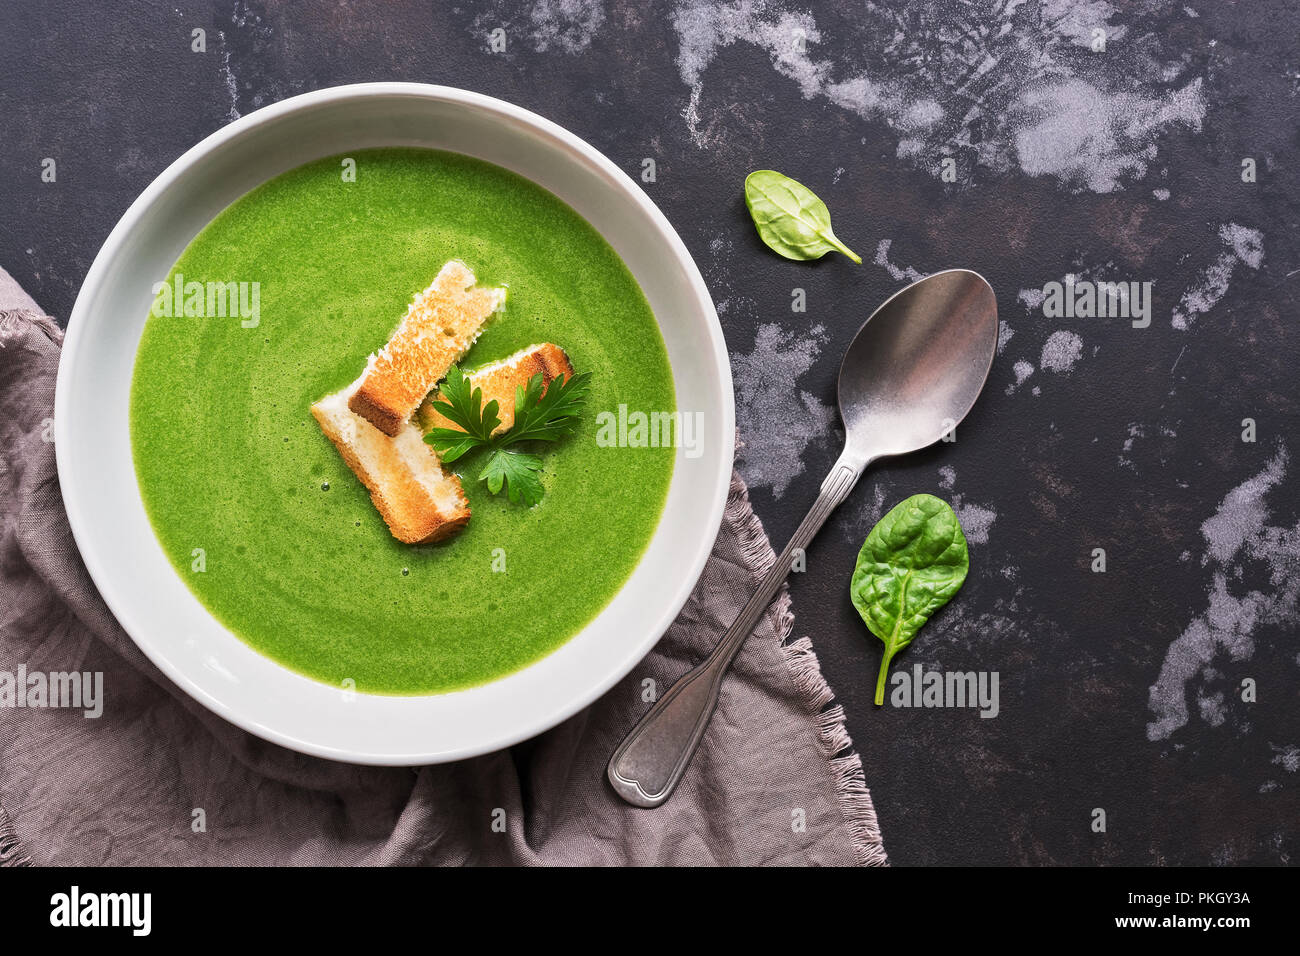 Green vegetable cream soup with spinach on a dark concrete background. Dietary healthy lunch or dinner. Top view, copy space. - Stock Image